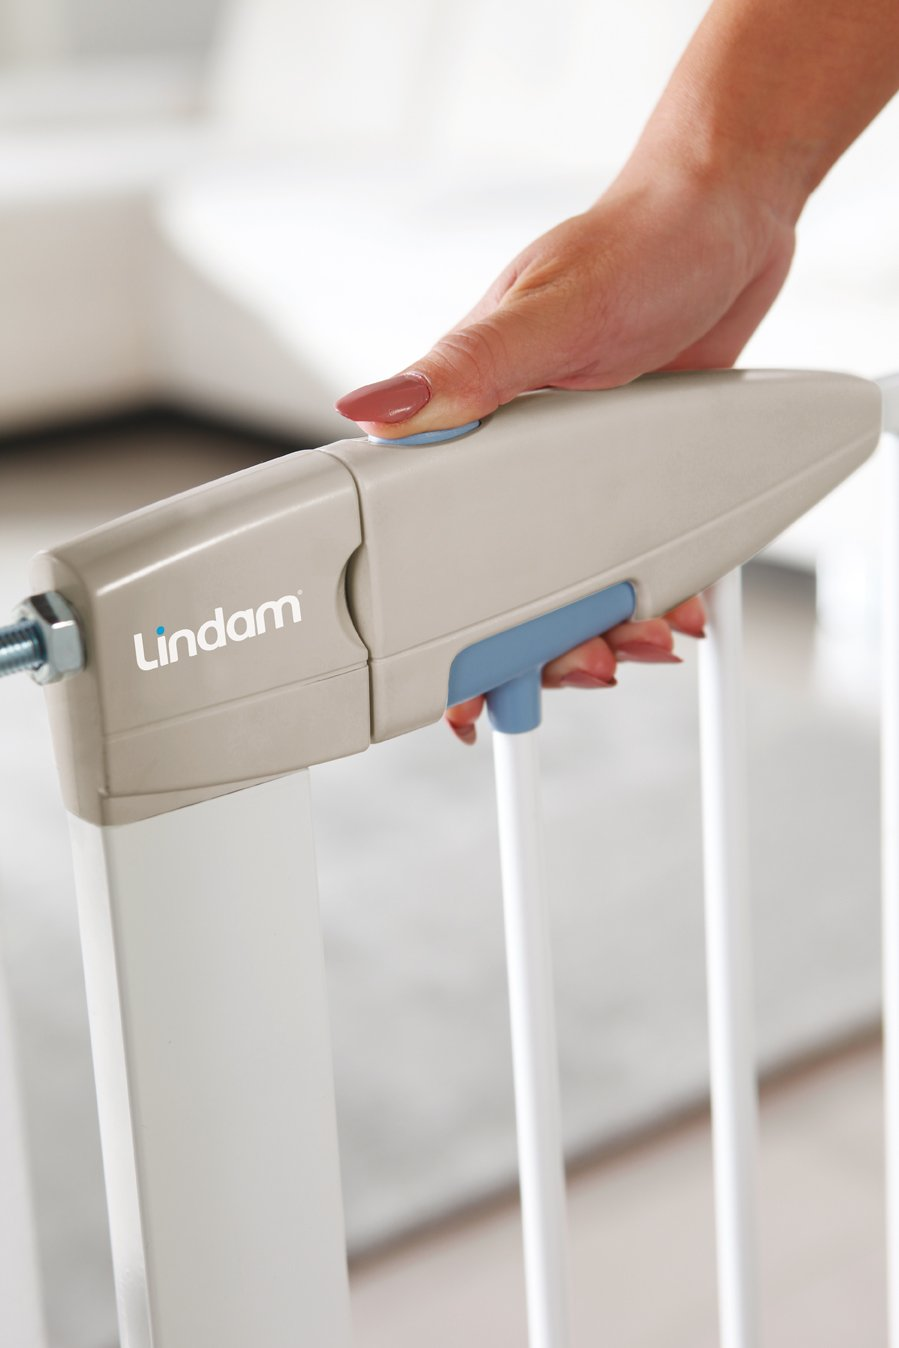 Lindam Sure Shut Porte Pressure Fit Safety Gate, White, 76-82 cm Lindam Easy close, push to shut closing mechanism; squeeze and lift handle for easy one handed adult opening Four point pressure fit - U shaped power frame provides solid pressure fitting; pressure indicator assures baby gate is installed correctly One way opening for use on bottom of stairs; two way opening for use in doorways providing maximum flexibility; optional second lock at base of baby gate 3